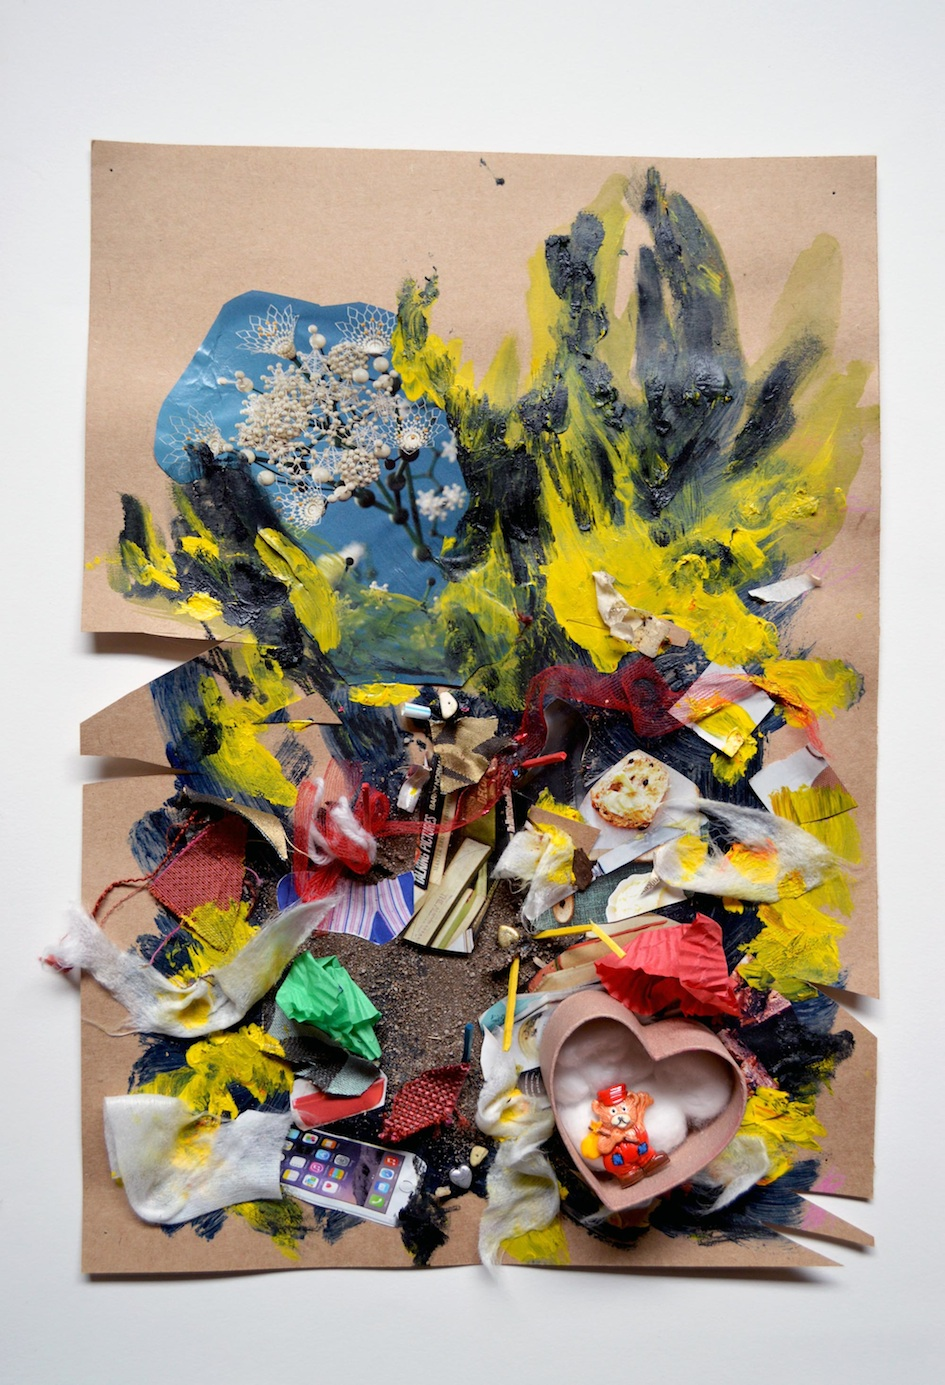 Natalya Garden-Thompson,  Resilience in the Chaos , 2017, Pastel, acrylic, sand, dirt, magazine images, badge & cotton wool, 4 x 30 x 42.5 cm  Photographed of a three dimensional artwork on brown cardboard with thick black, blue & yellow paint applied expressively. There are bits of unpainted cardboard around the edges. Stuck on top of the paint are collaged pieces of: dirt, sand, small pieces of blue & yellow wood, pieces of torn up tissue, wool, material, magazines clippings (including an image of an IPhone, flowers, bits of food), muffin wrappers and a small cardboard heart shaped box full of cotton wool with a little teddy bear wearing red and blue overalls and a red hat who is carrying a small yellow bag on a stick over his shoulder. He is waving. The cardboard has triangle shapes cut out of it on the middle left hand side.